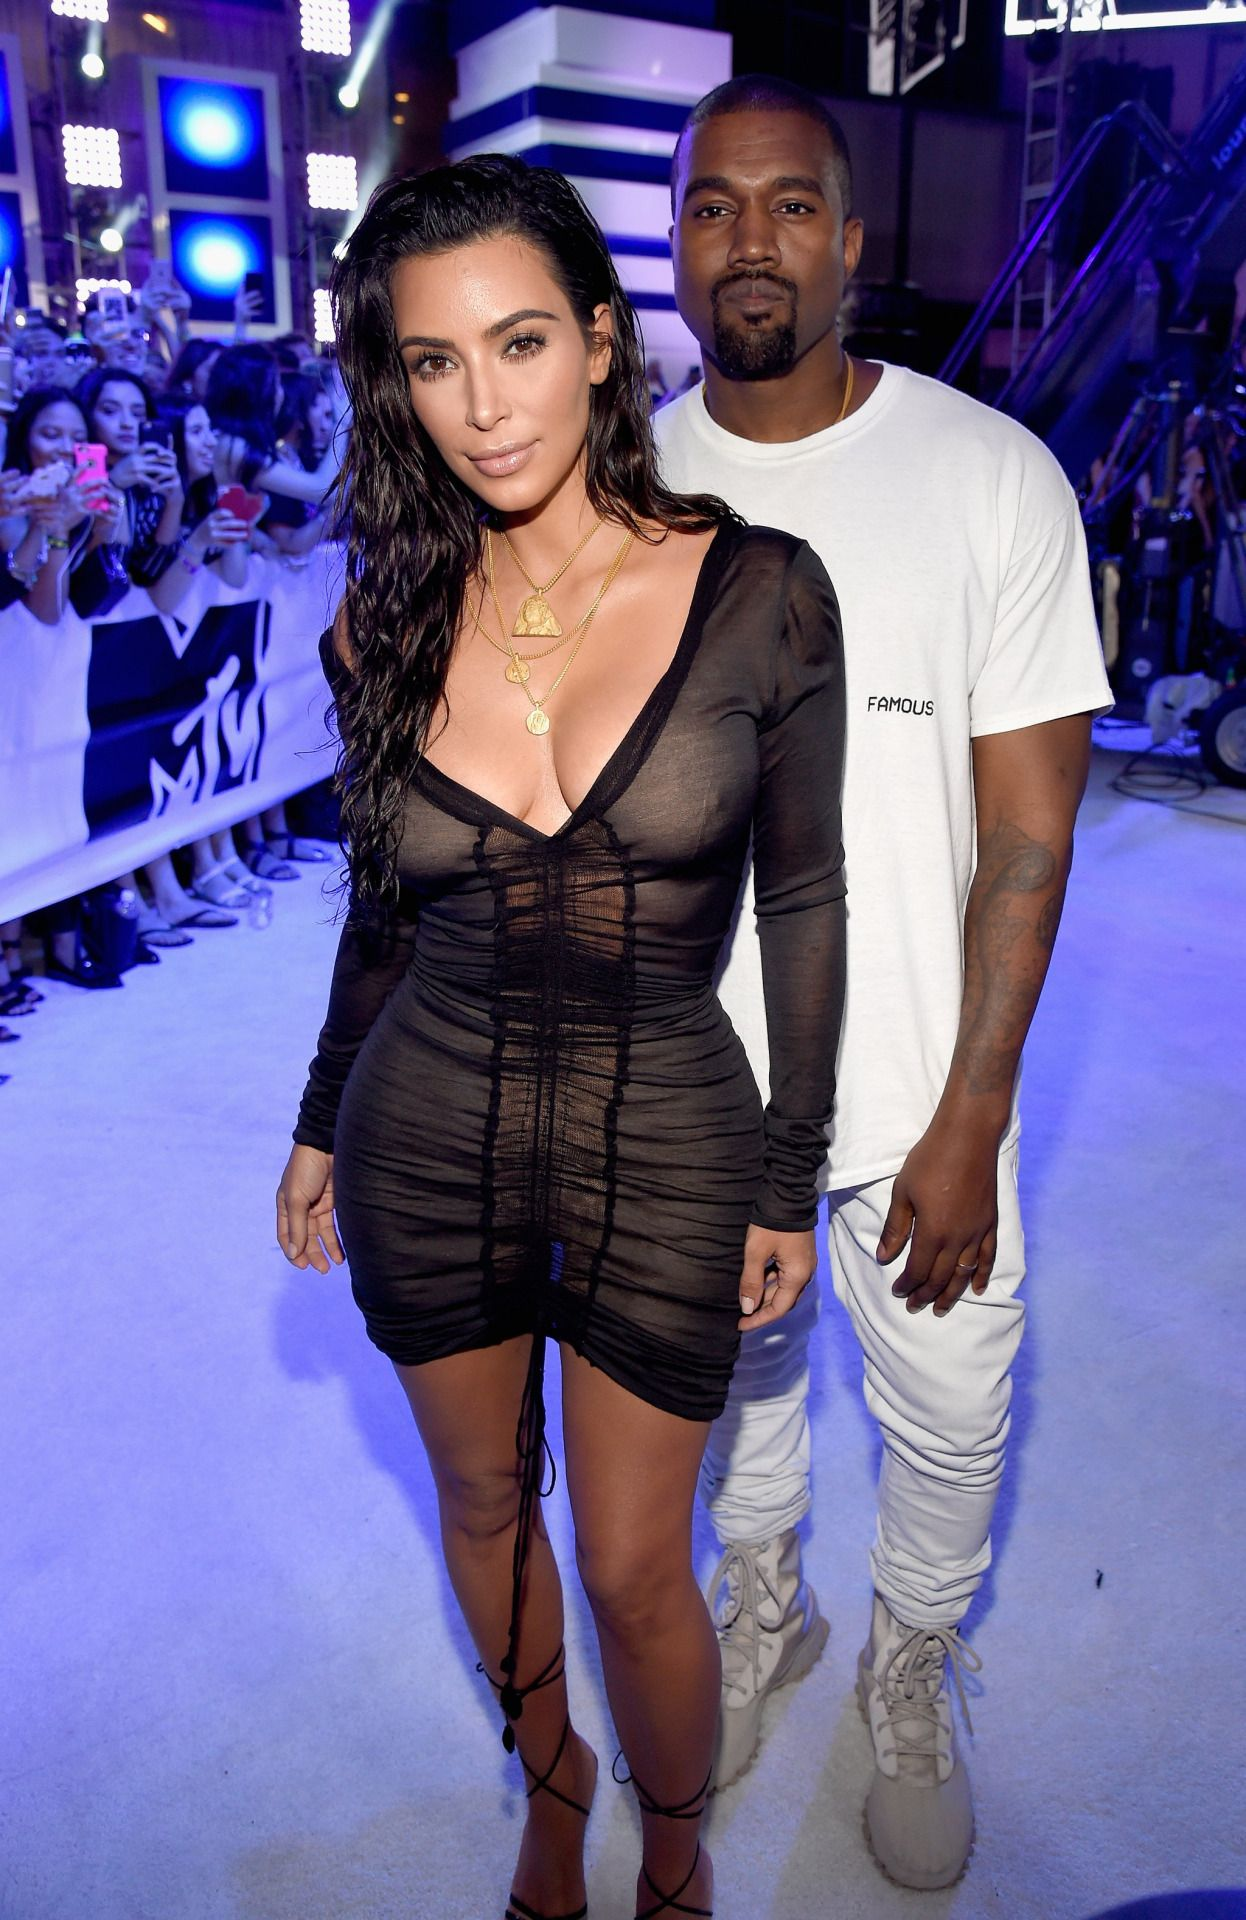 28th August 2016 Kim Kanye At The 2016 Mtv Video Music